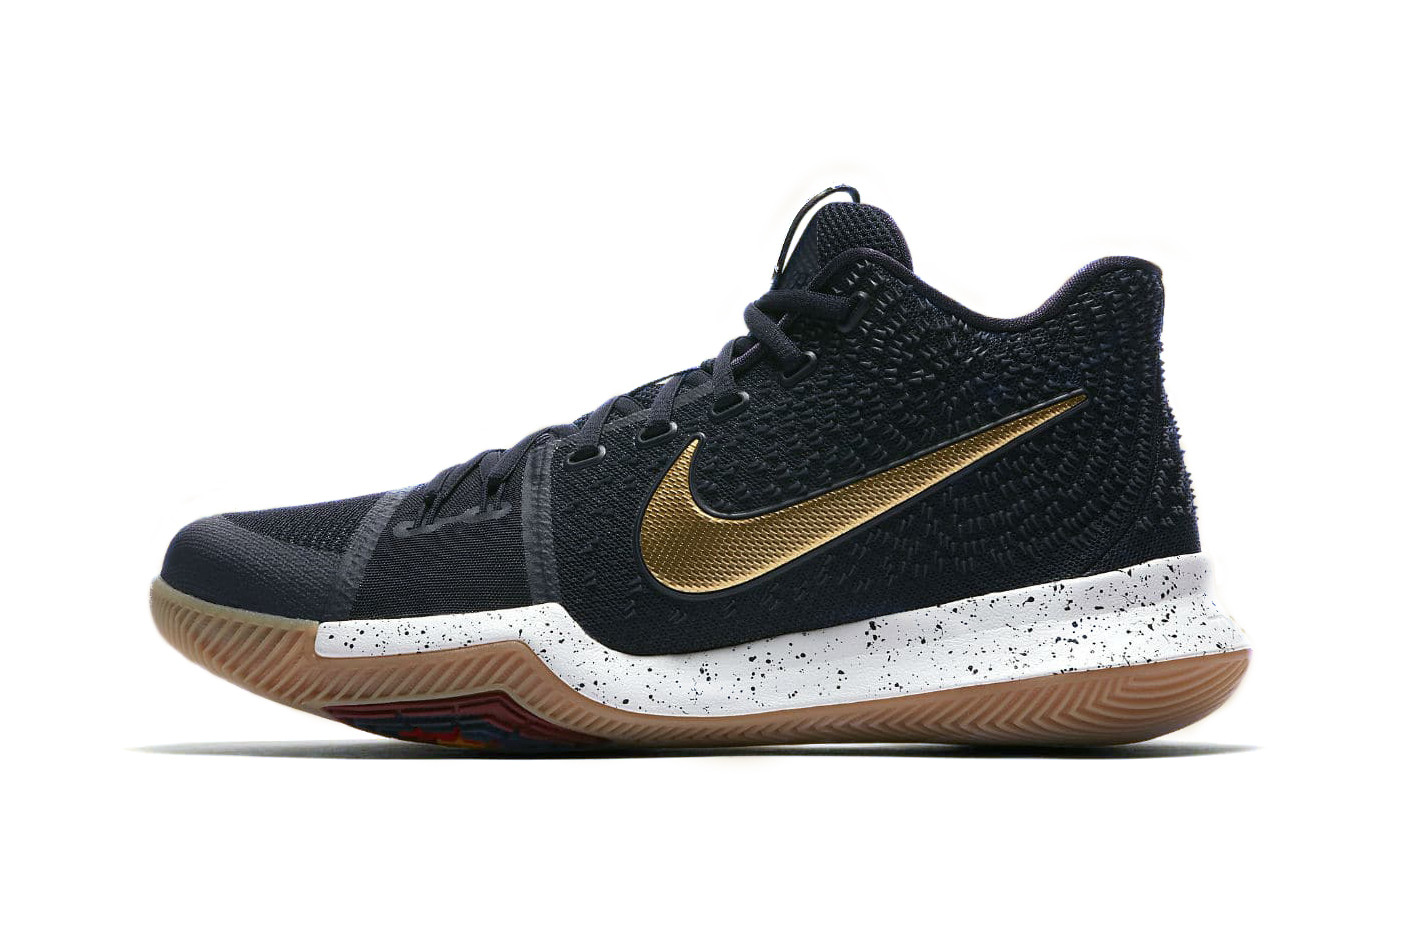 Nike Kyrie 3 in Black, White, and Gold